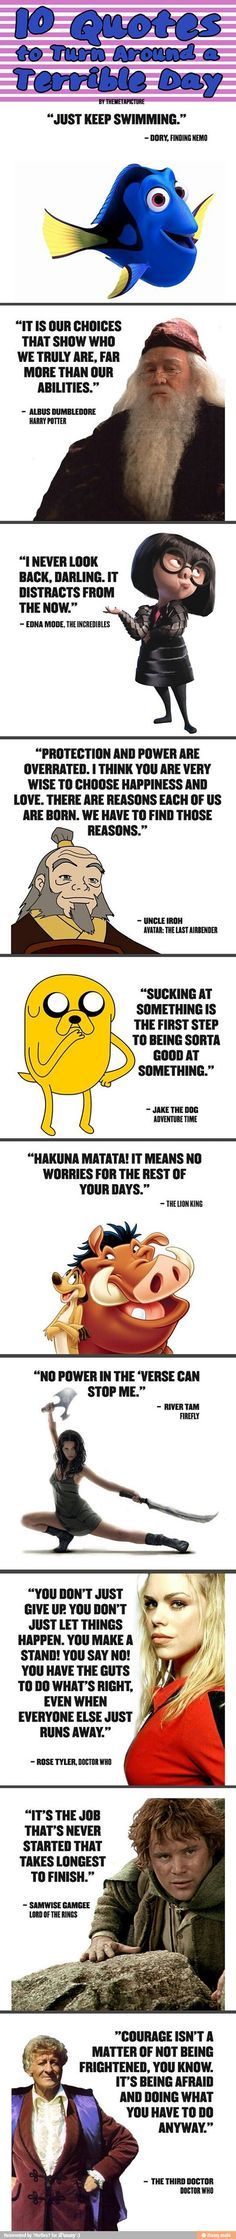 Quotes that will make your day better, although i honestly dont agree with the lion king quote. we'll have troubles and worries throughout our days, but we dont give up, we push through it